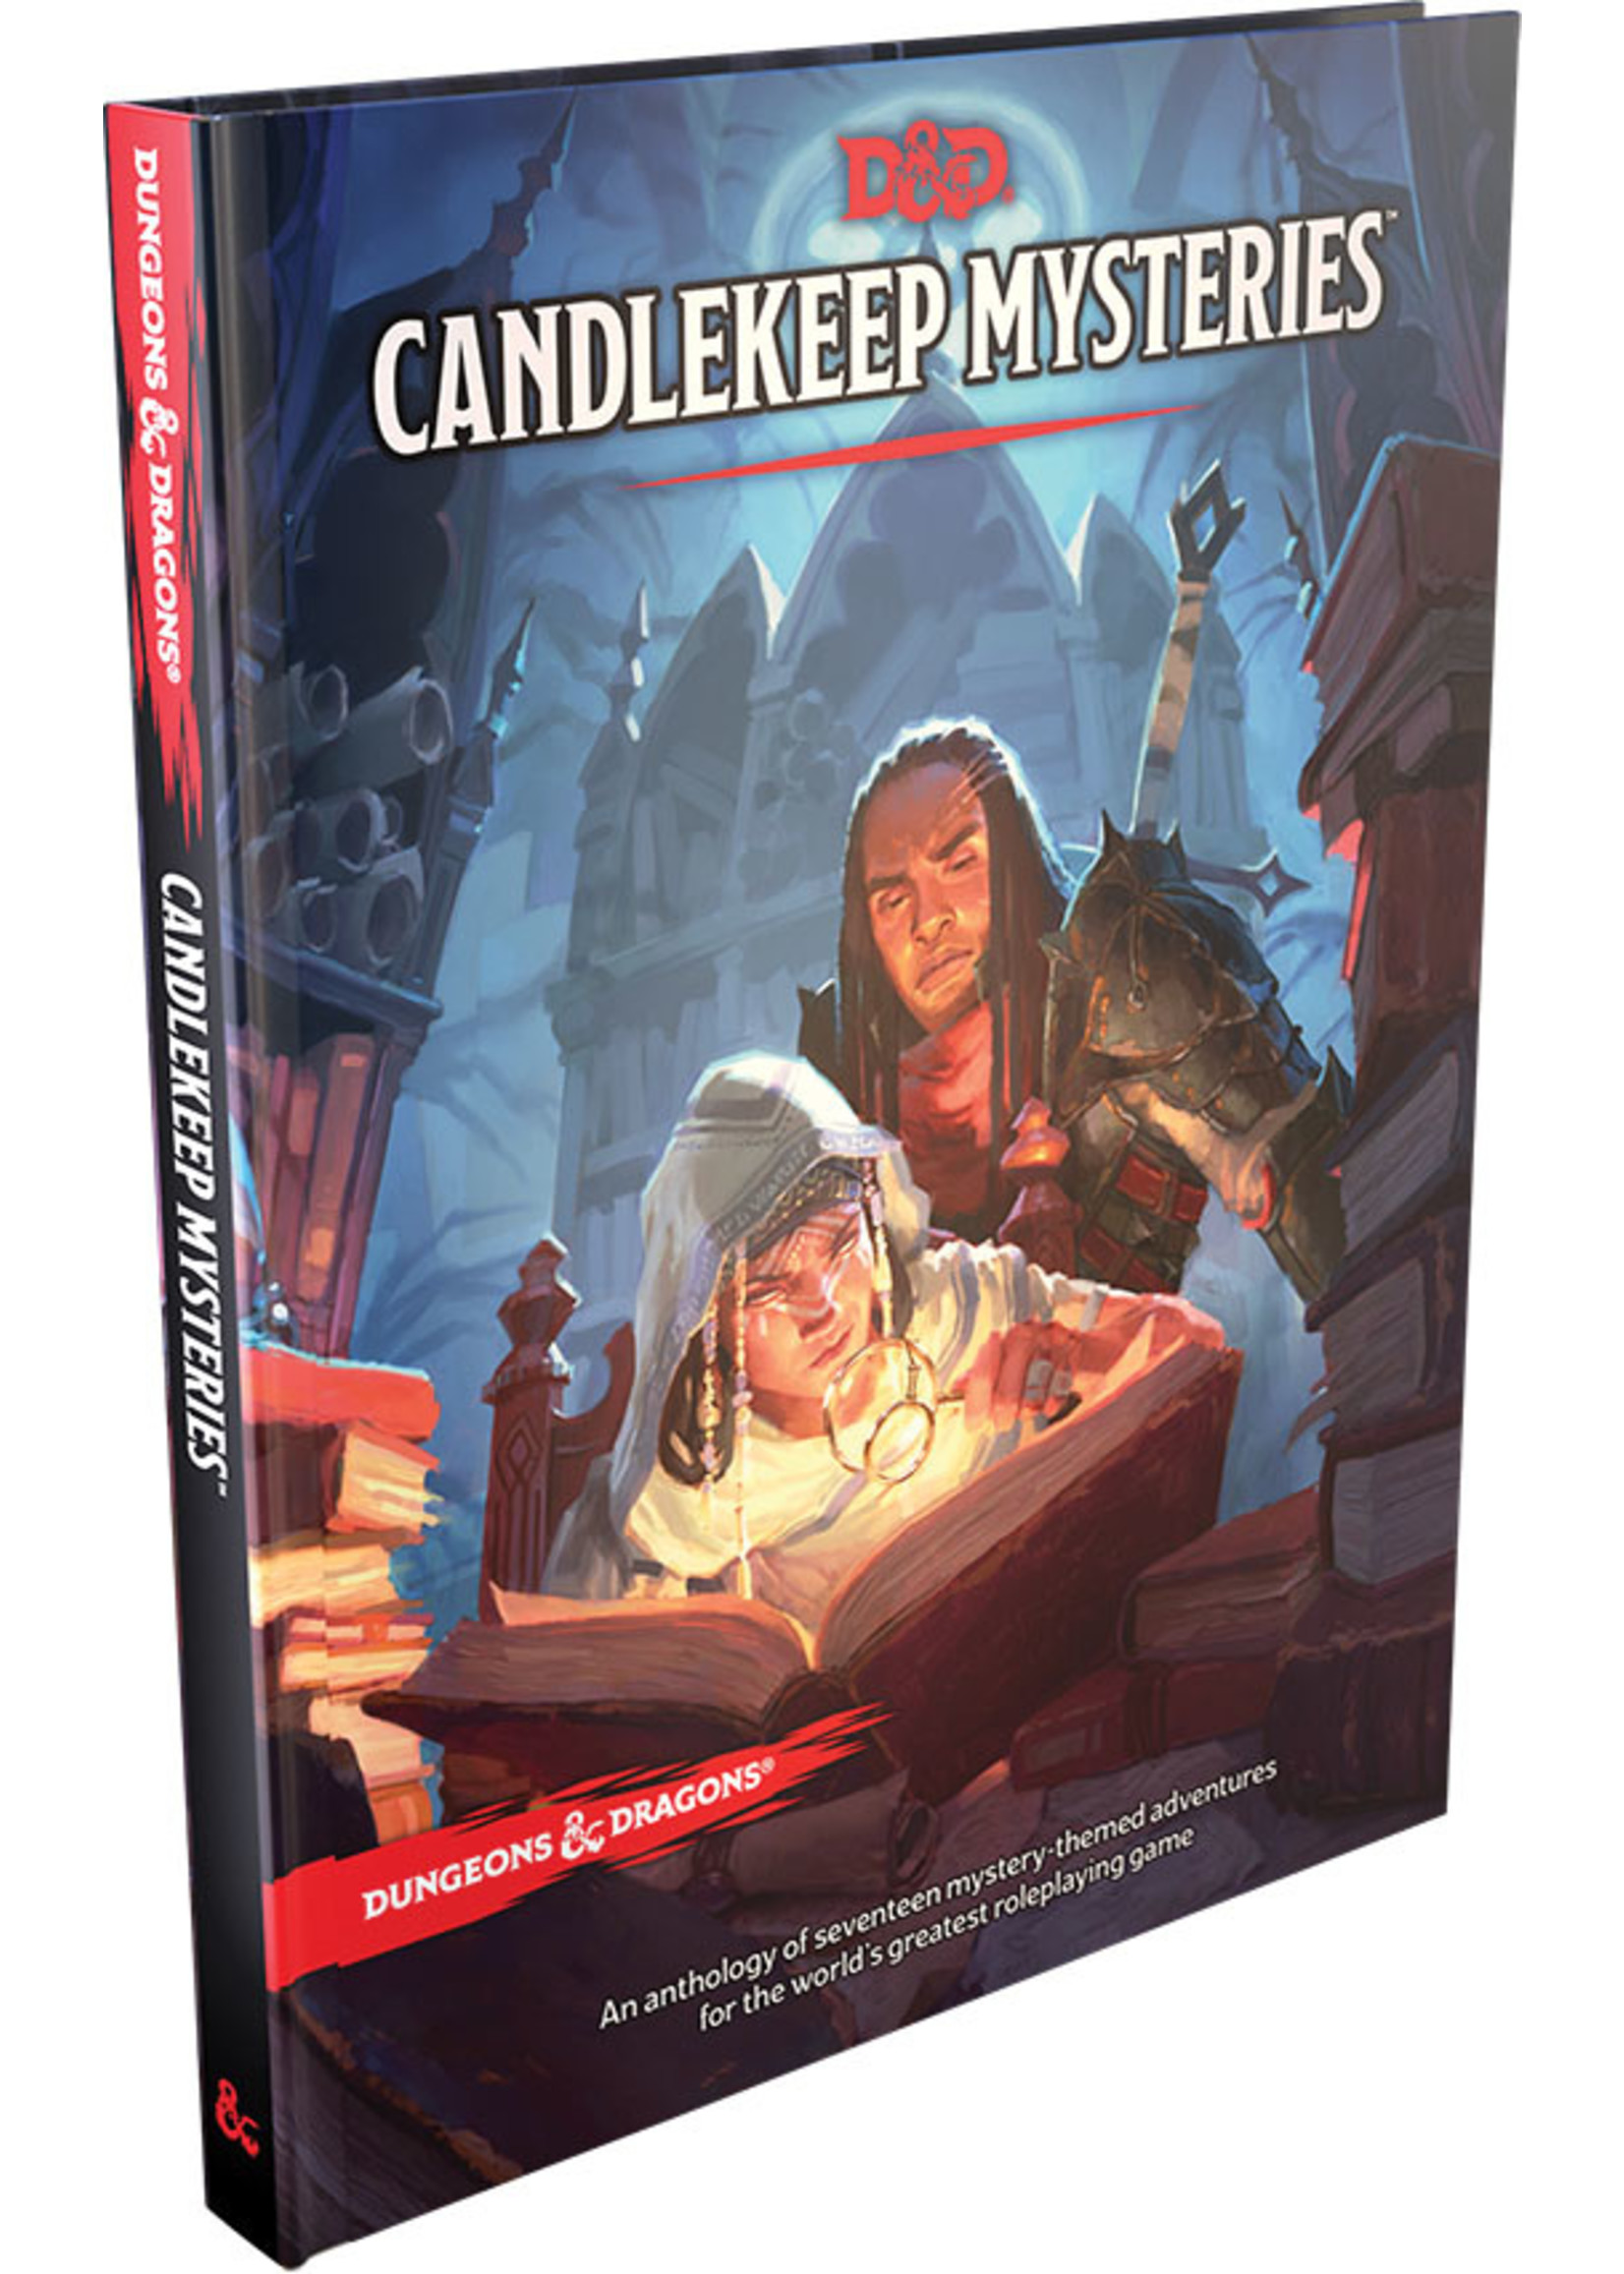 Dungeons & Dragons Candlekeep Mysteries Hard Cover